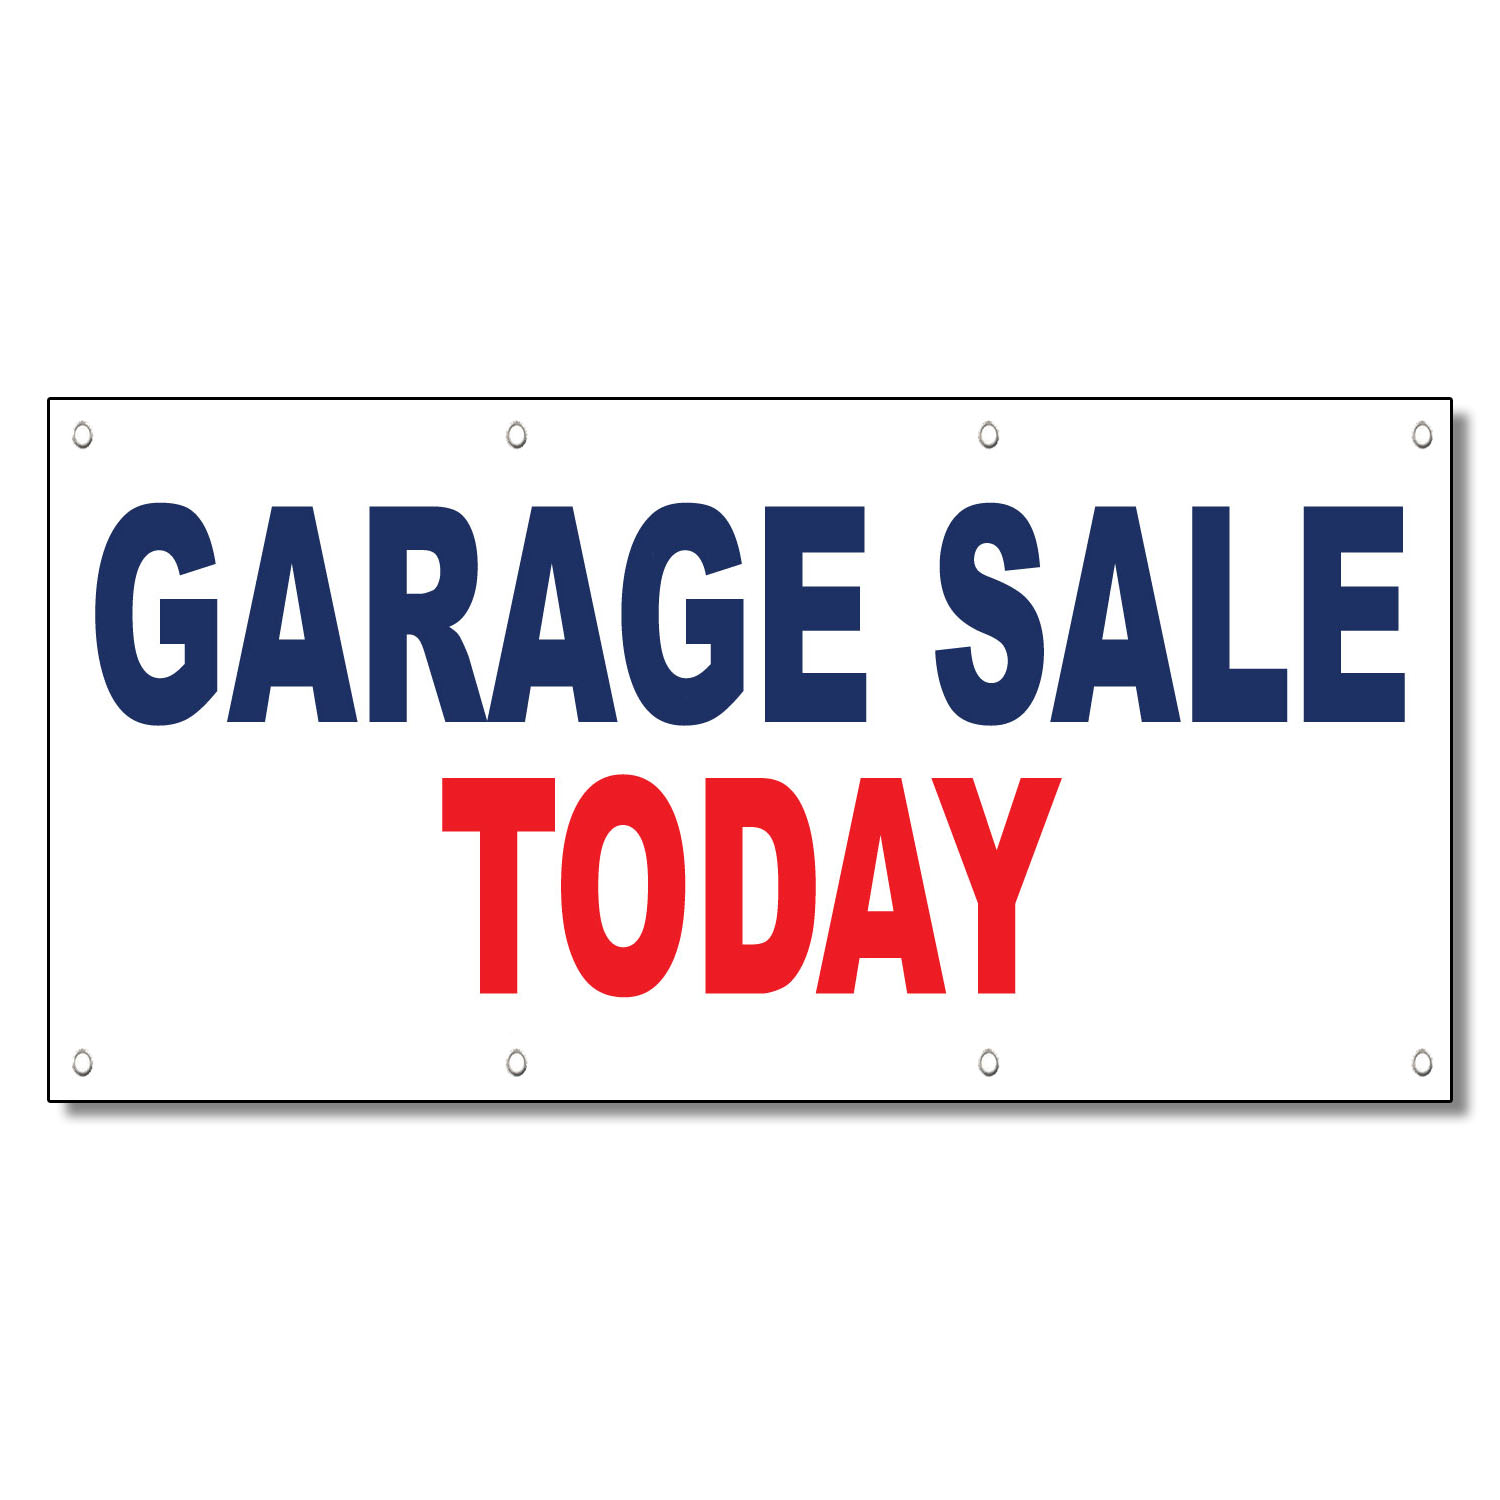 Garage Sale Today Blue Red 13 Oz Vinyl Banner Sign With Make Your Own Beautiful  HD Wallpapers, Images Over 1000+ [ralydesign.ml]